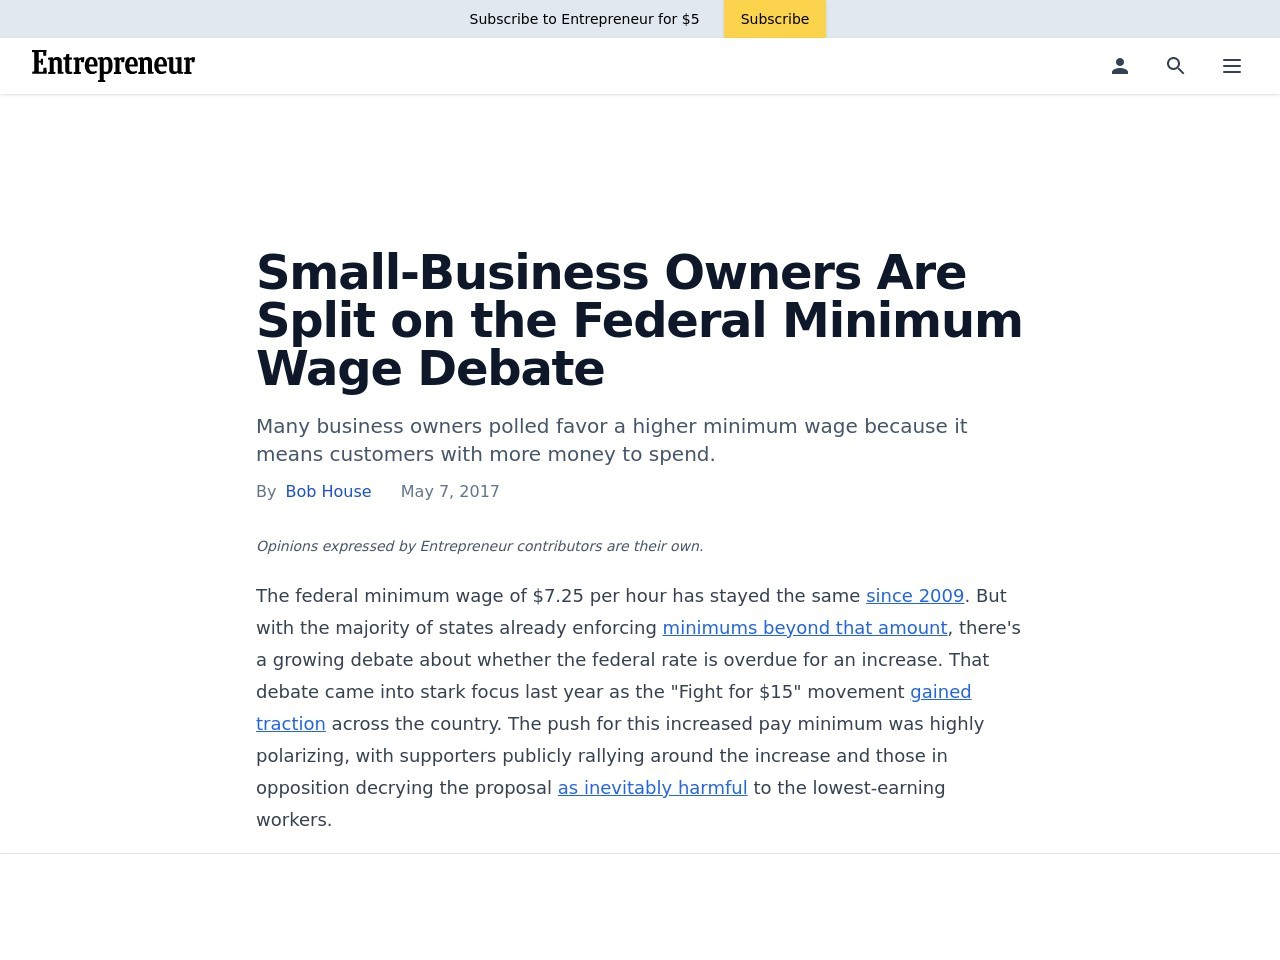 Small-Business Owners Are Split on the Federal Minimum Wage Debate